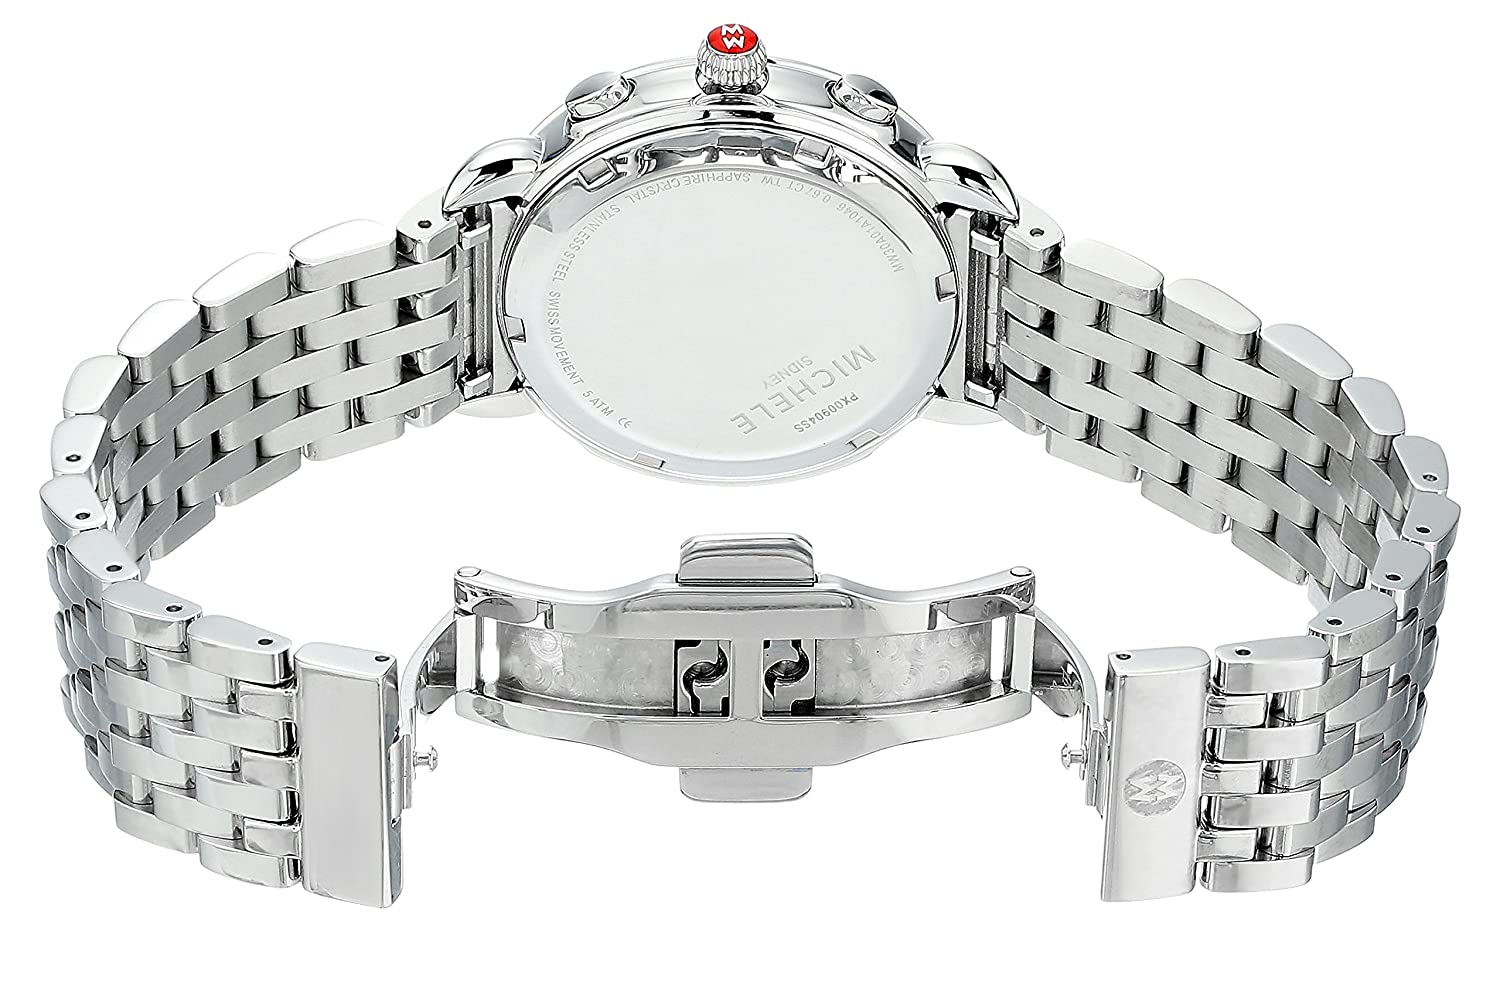 b8df72e94 Amazon.com: Michele Sidney One Hundred Seventeen Diamonds Swiss Chronograph  Mother of Pearl Dial Silver Tone Women's Watch MWW30A000001: Watches